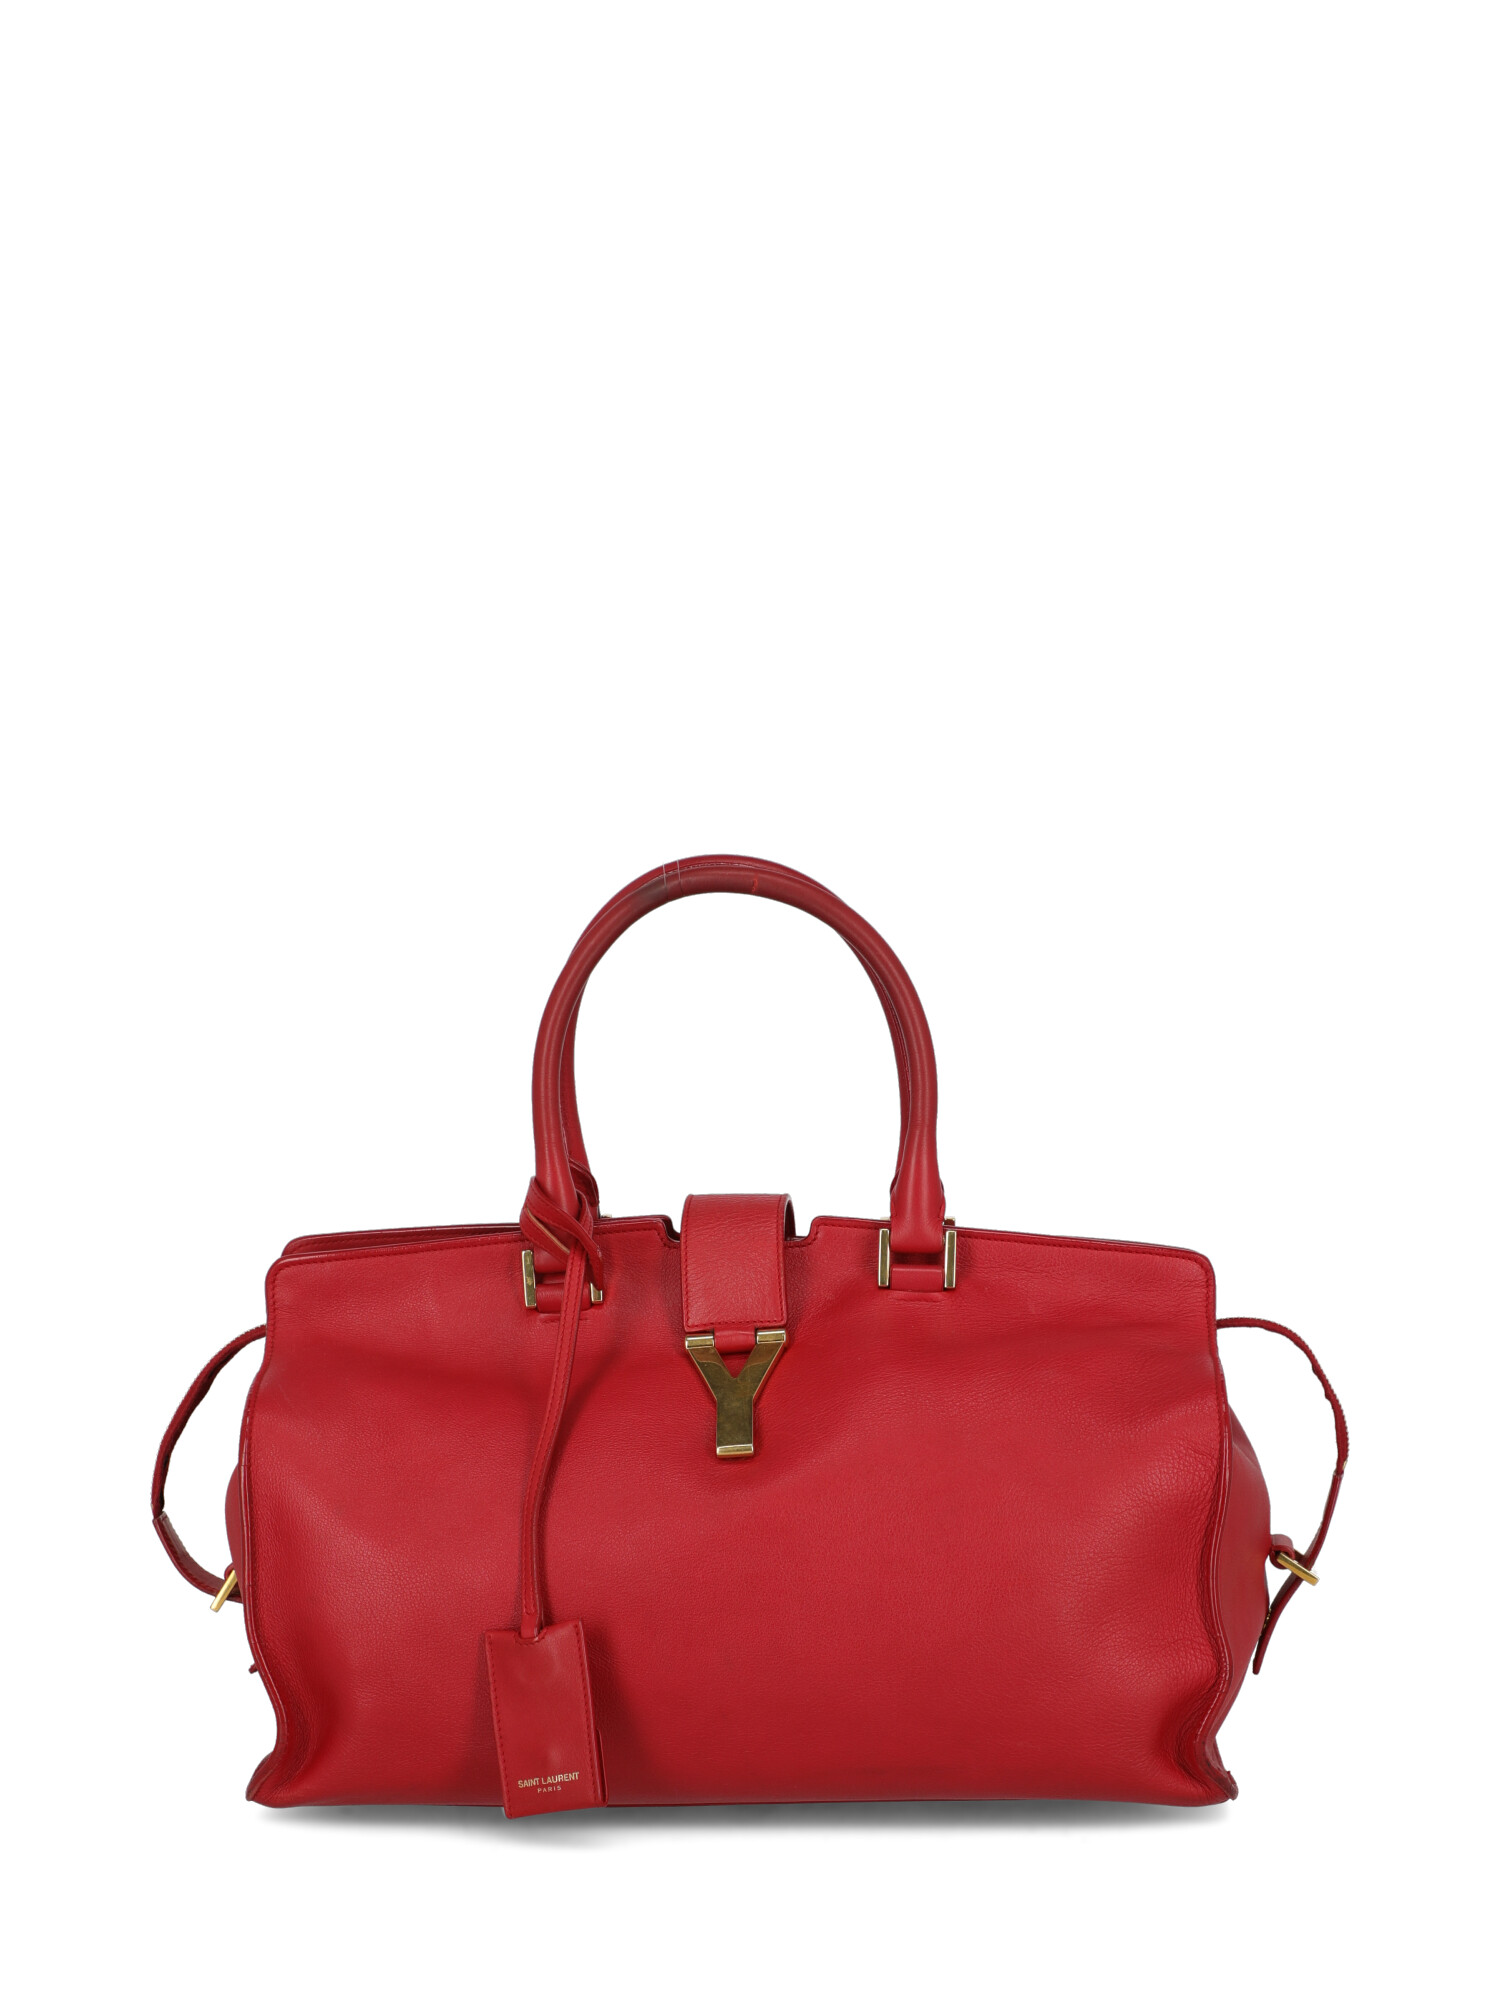 Pre-owned Saint Laurent Cabas Chyc In Red